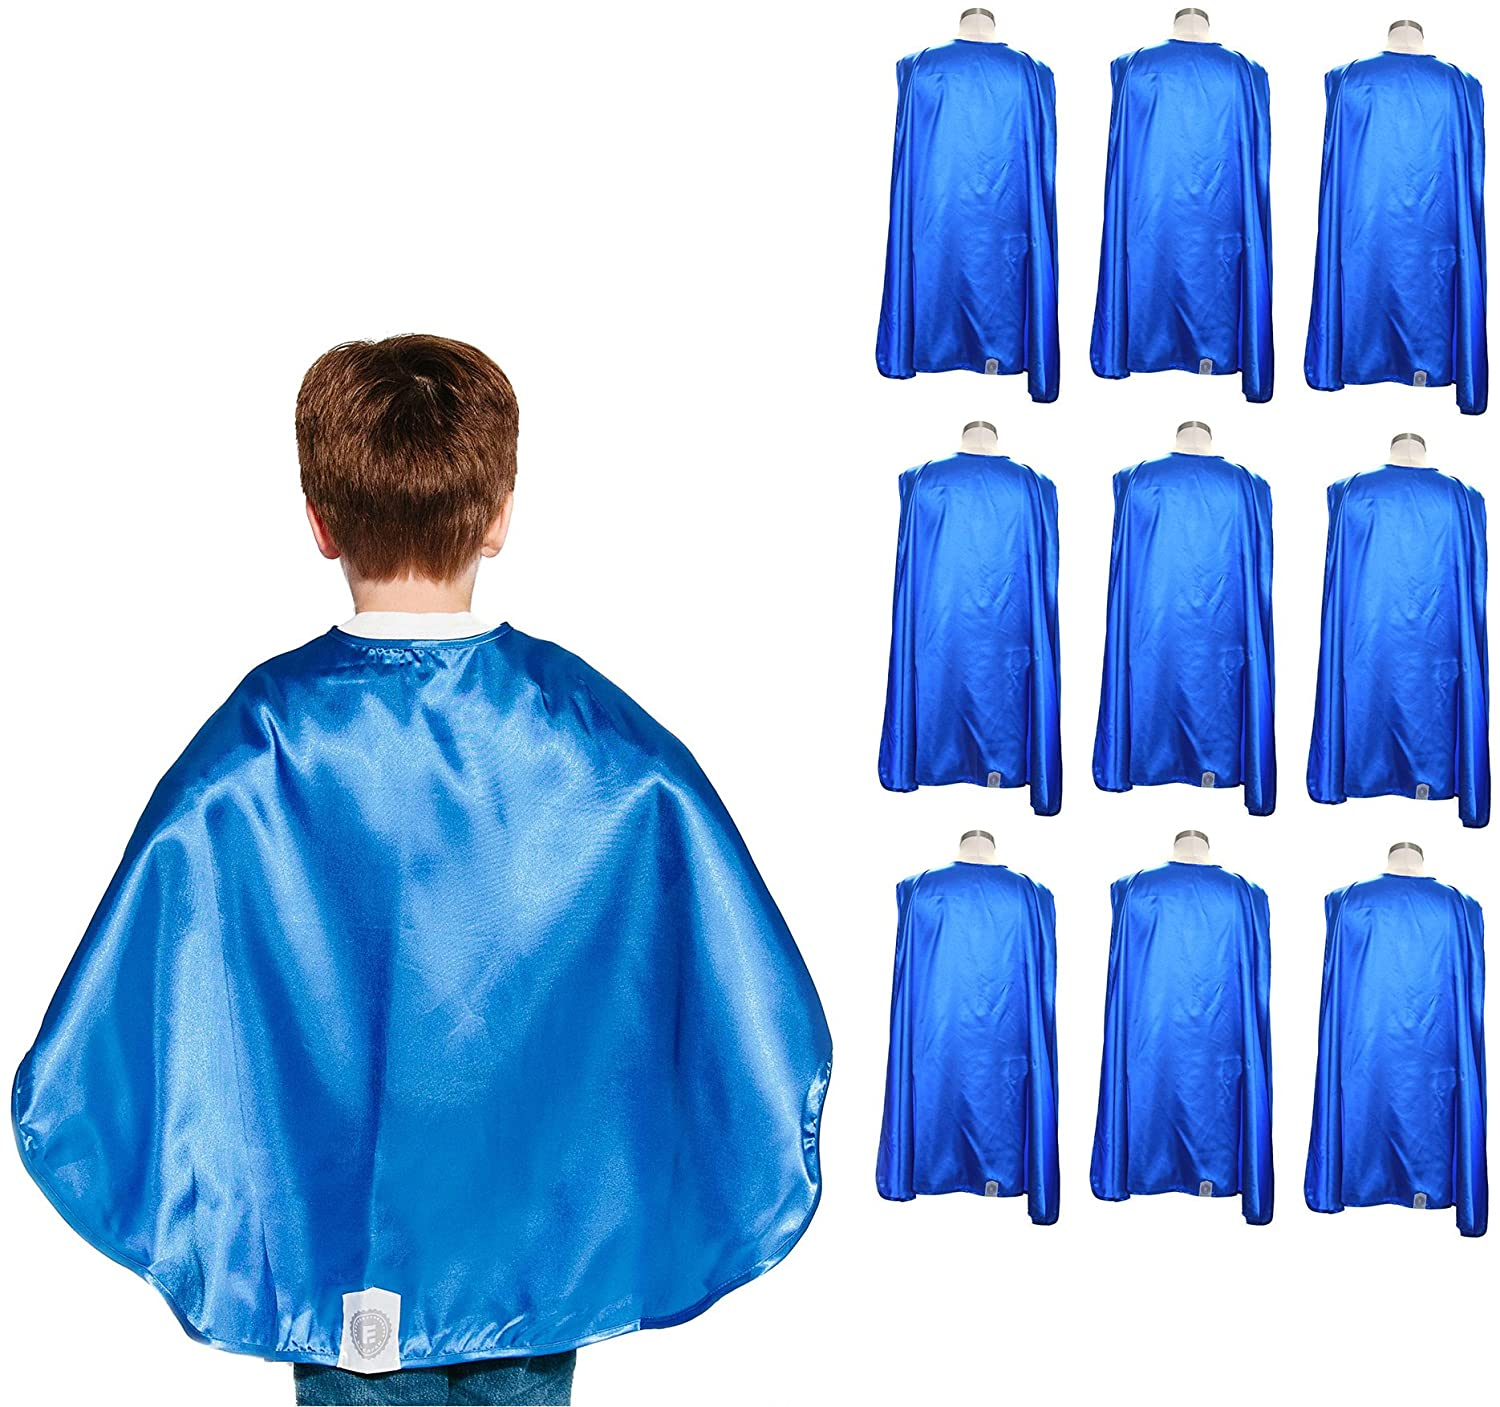 Everfan Youth Superhero Cape Party Pack | Set of 10 Polyester Satin Capes - Kids (Royal Blue)